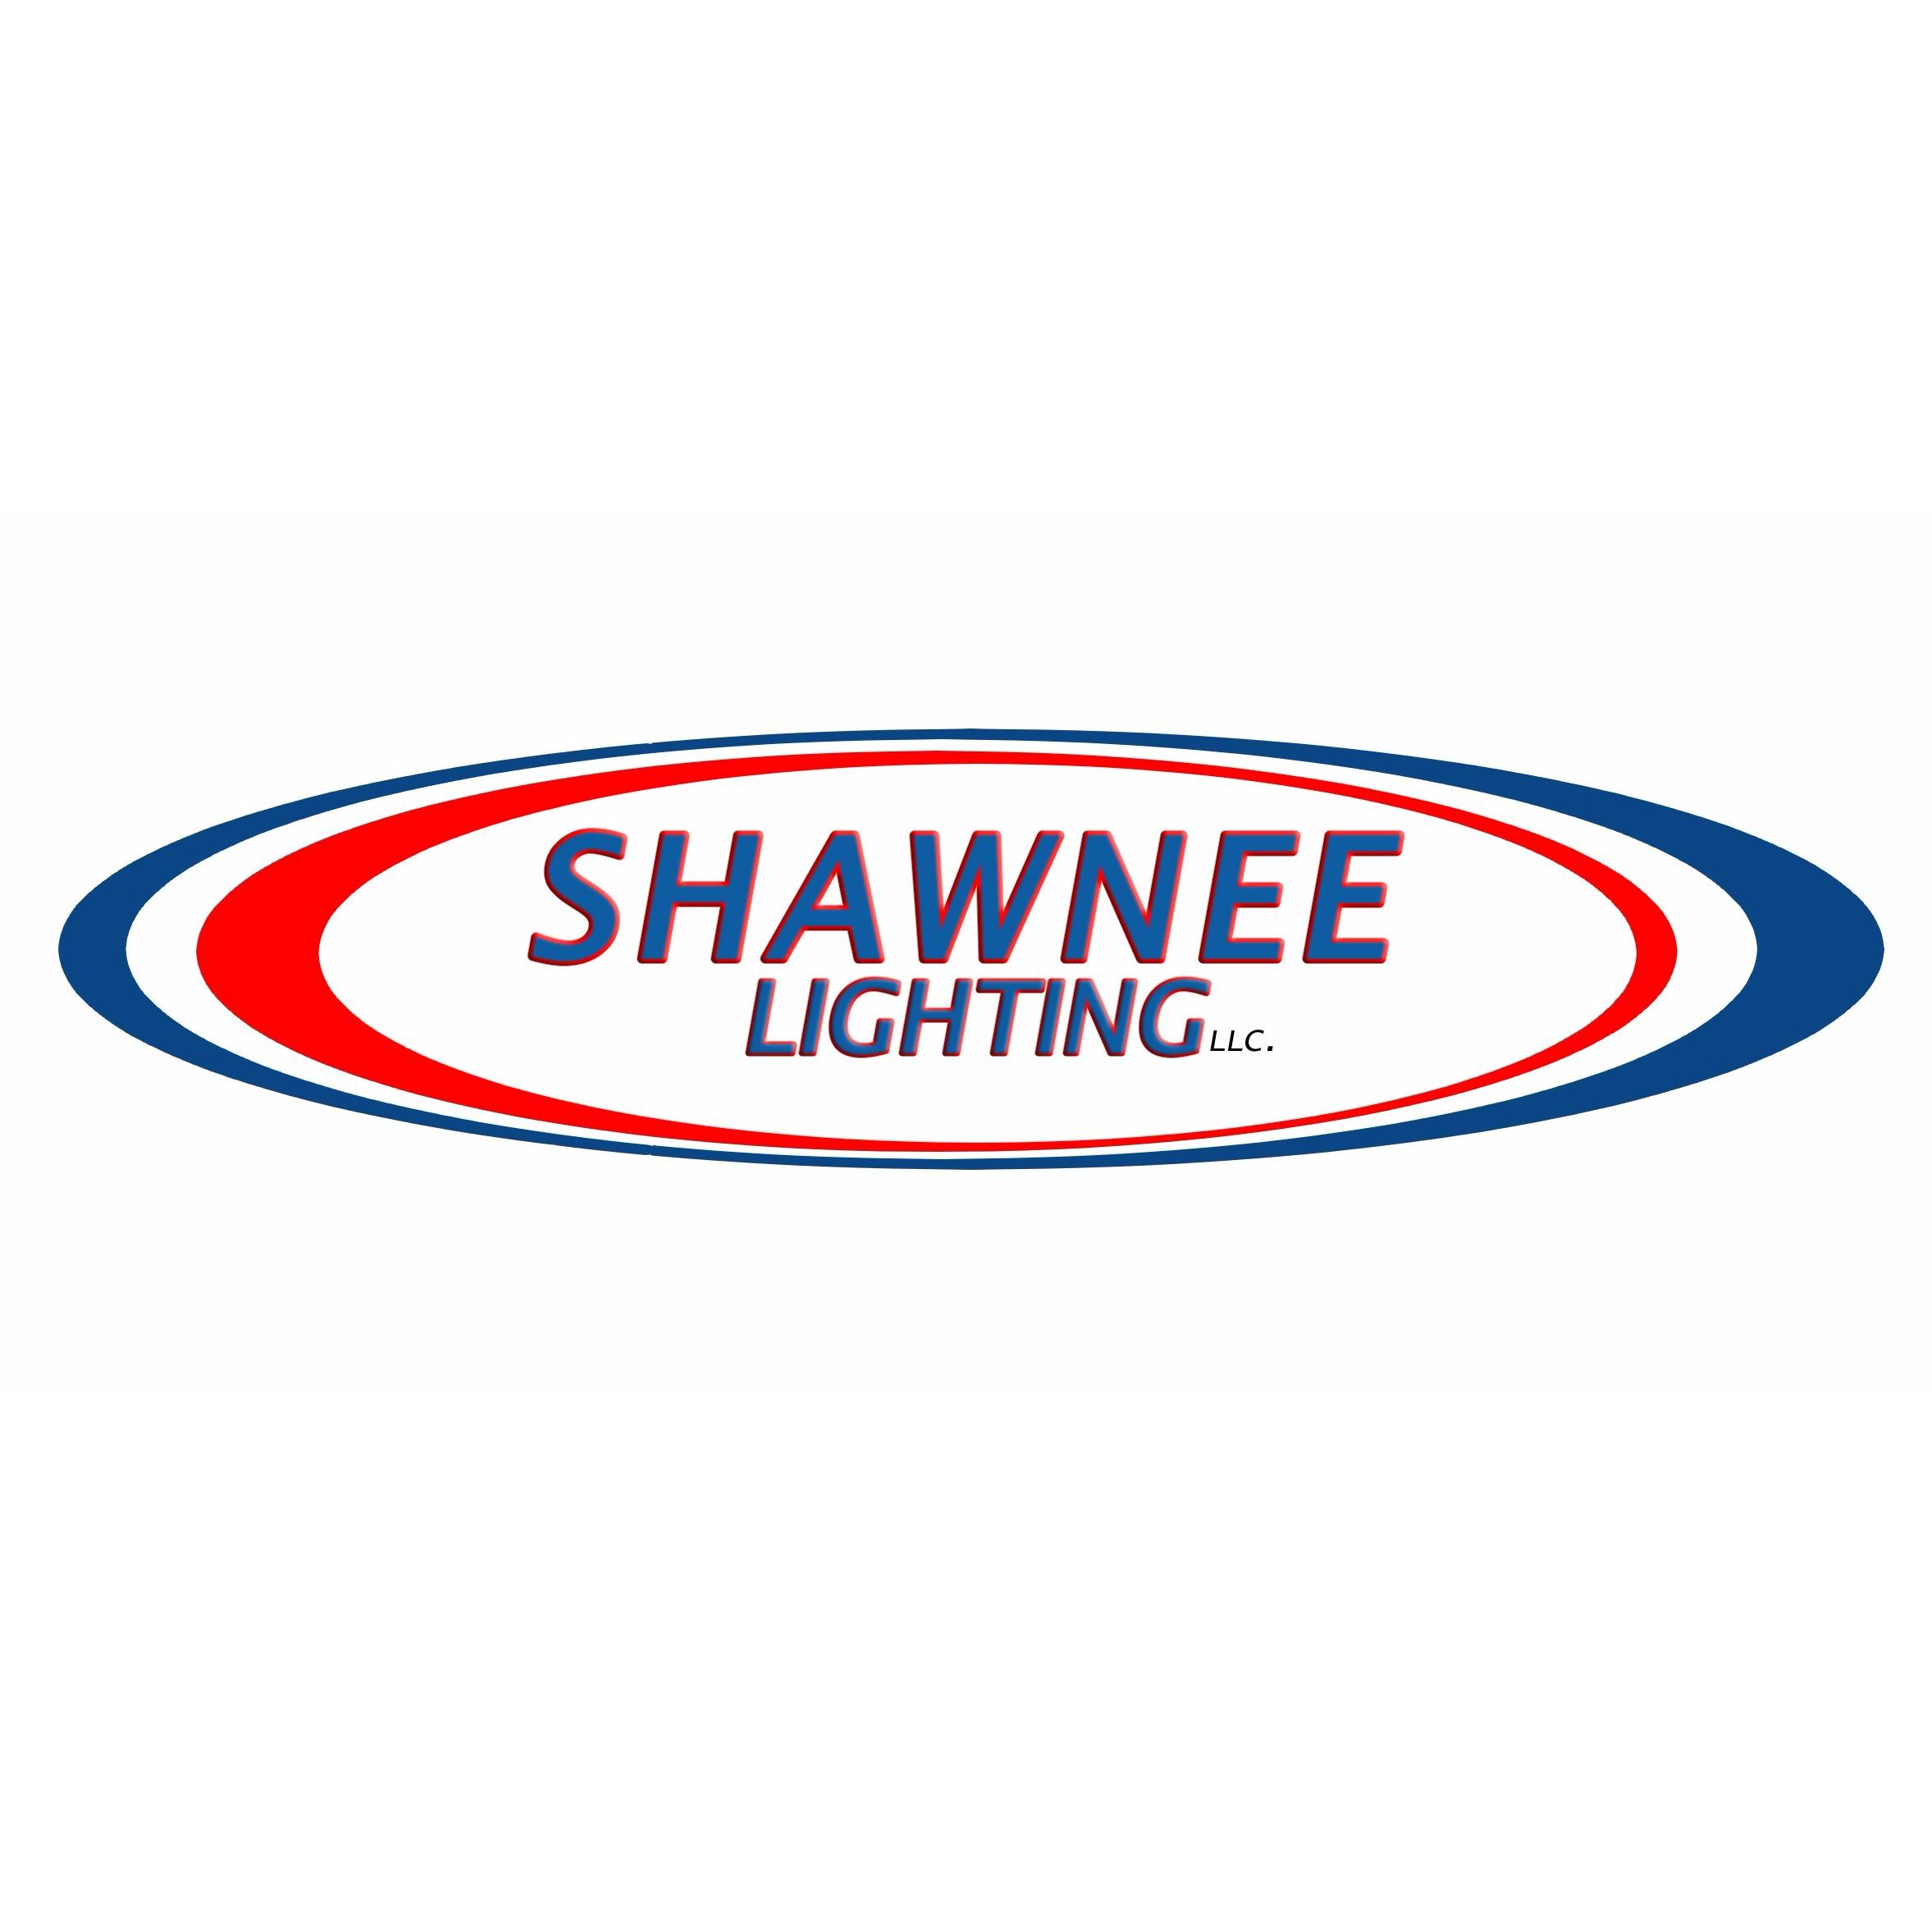 Shawnee Lighting Systems